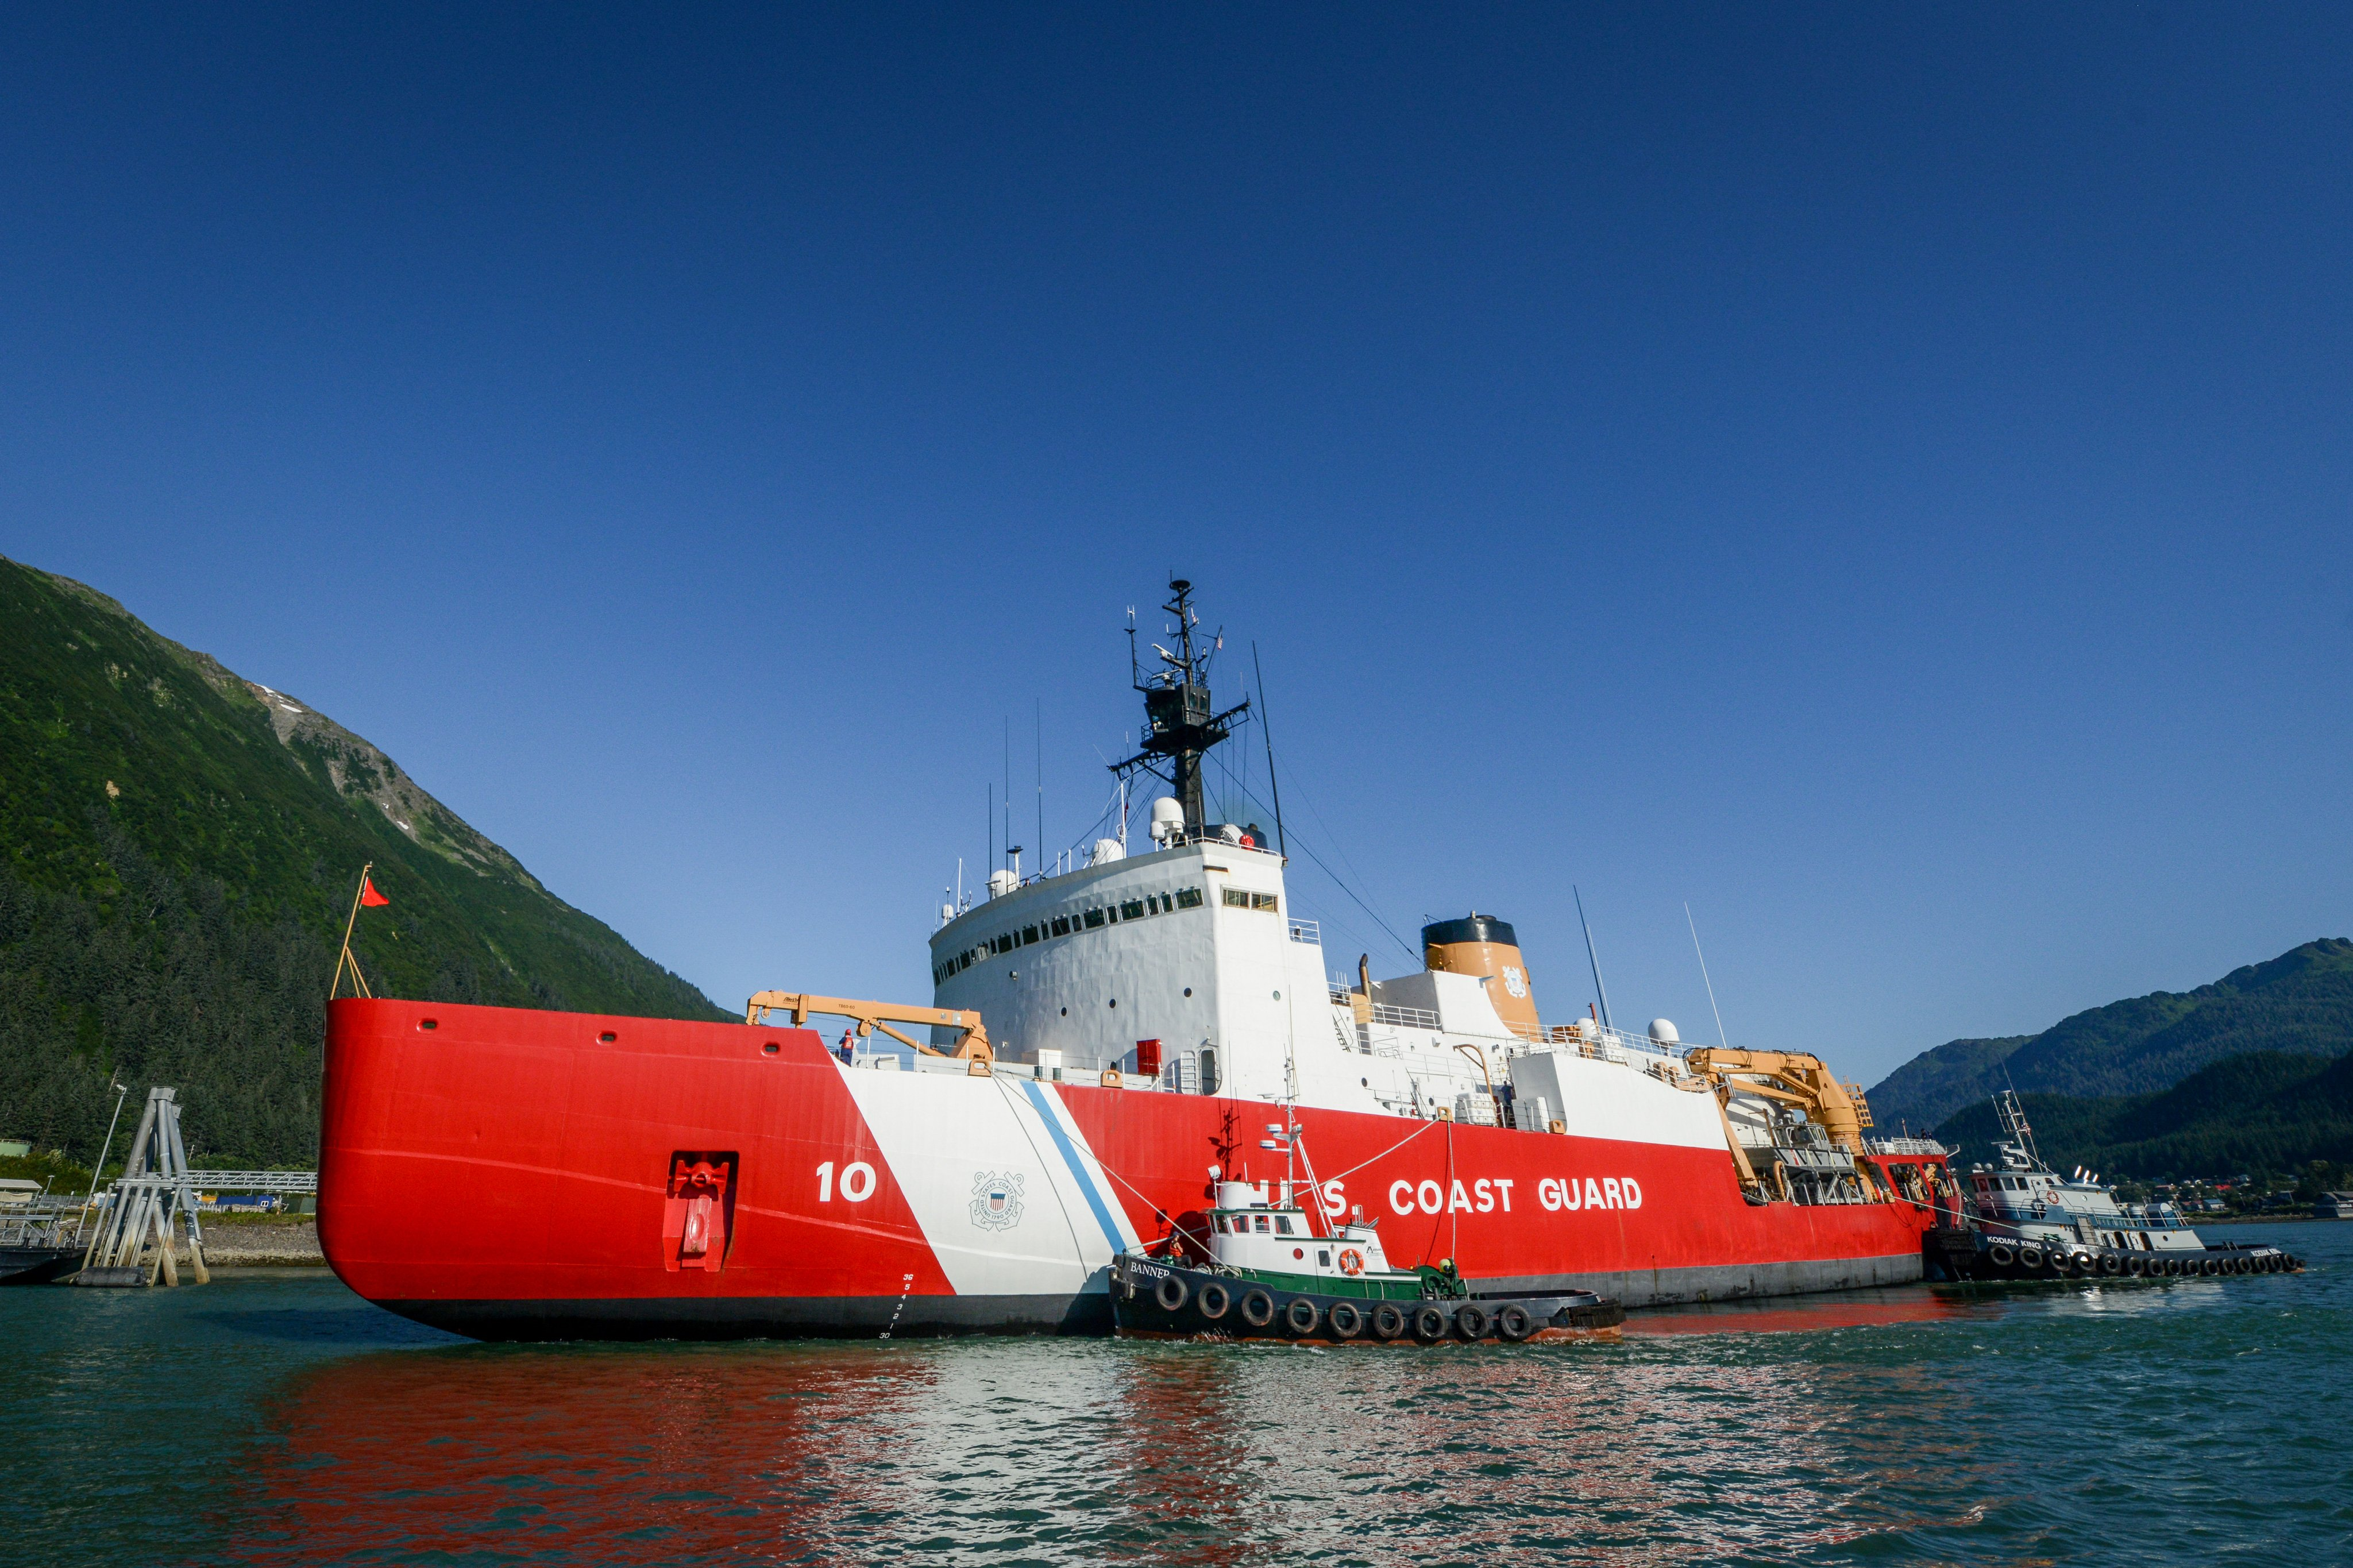 The crew of the Coast Guard Cutter Polar Star prepares to moor to the AJ Pier in Juneau, Alaska, Aug. 2, 2013. The crew invited residents of Juneau to tour the icebreaker during the Coast Guard's birthday weekend. (Petty Officer 3rd Class Grant DeVuyst / U.S. Coast Guard)